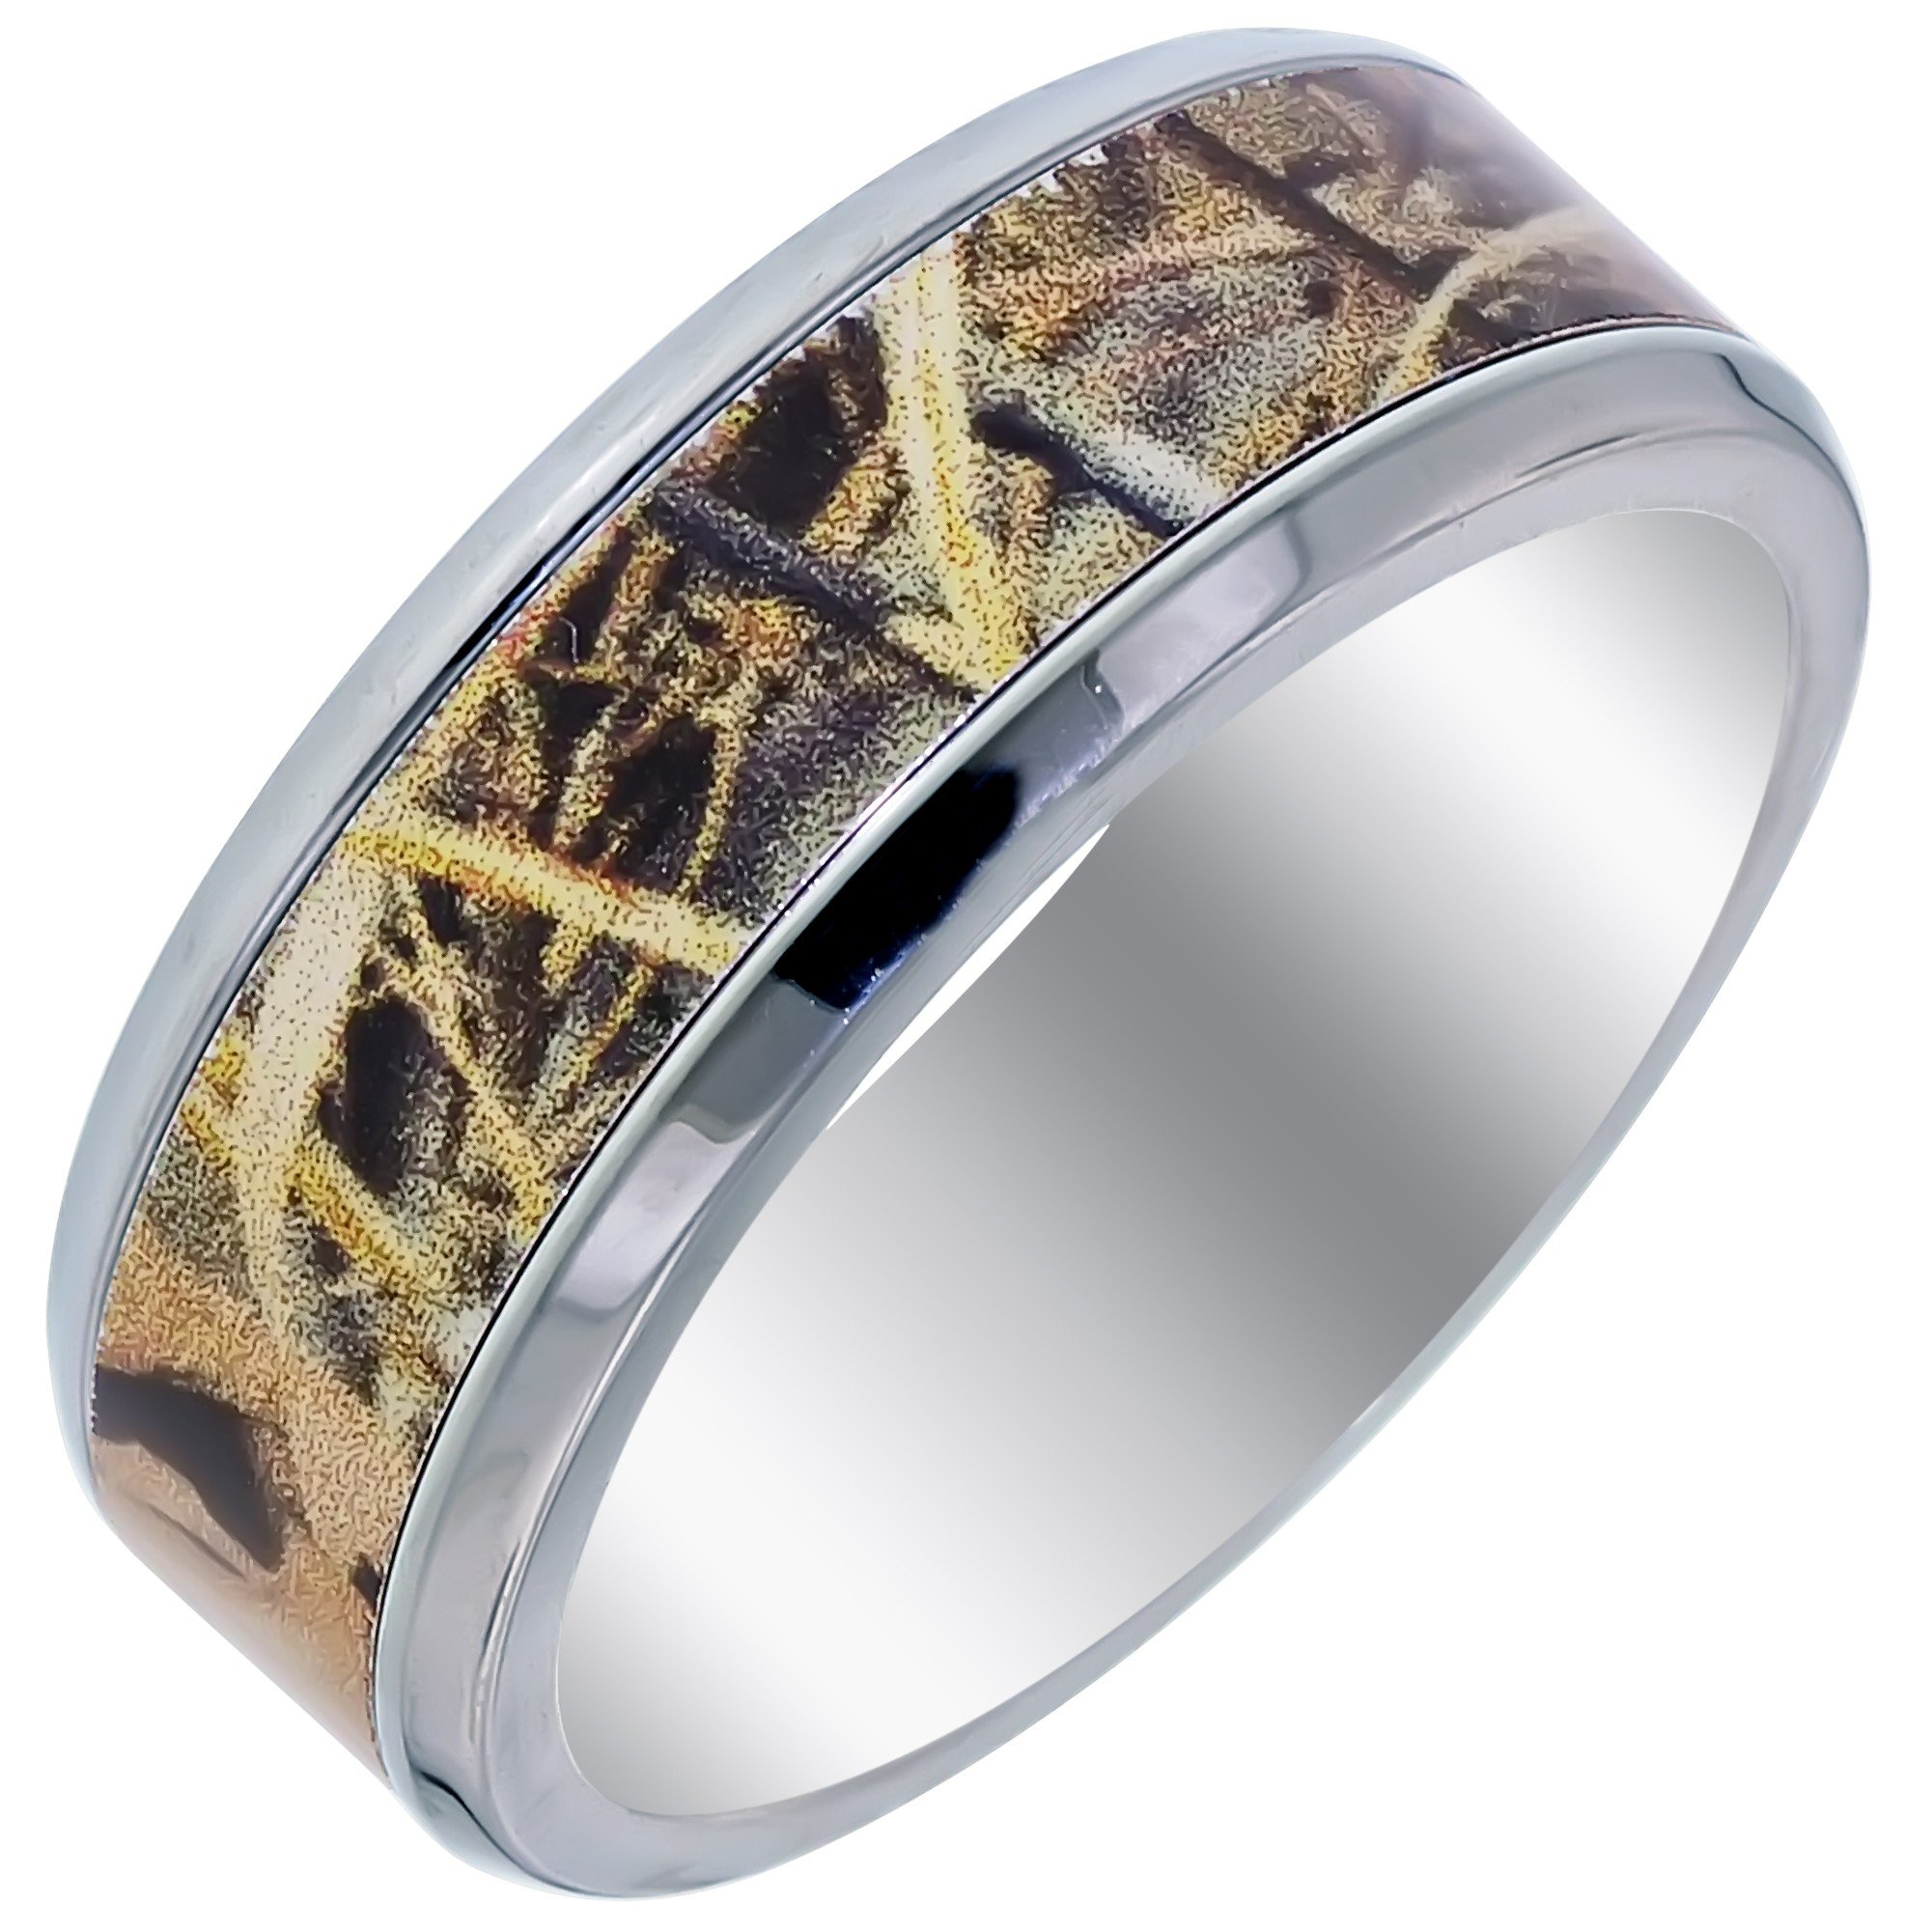 Mens camo wedding bands wedding and bridal inspiration for Camo mens wedding rings